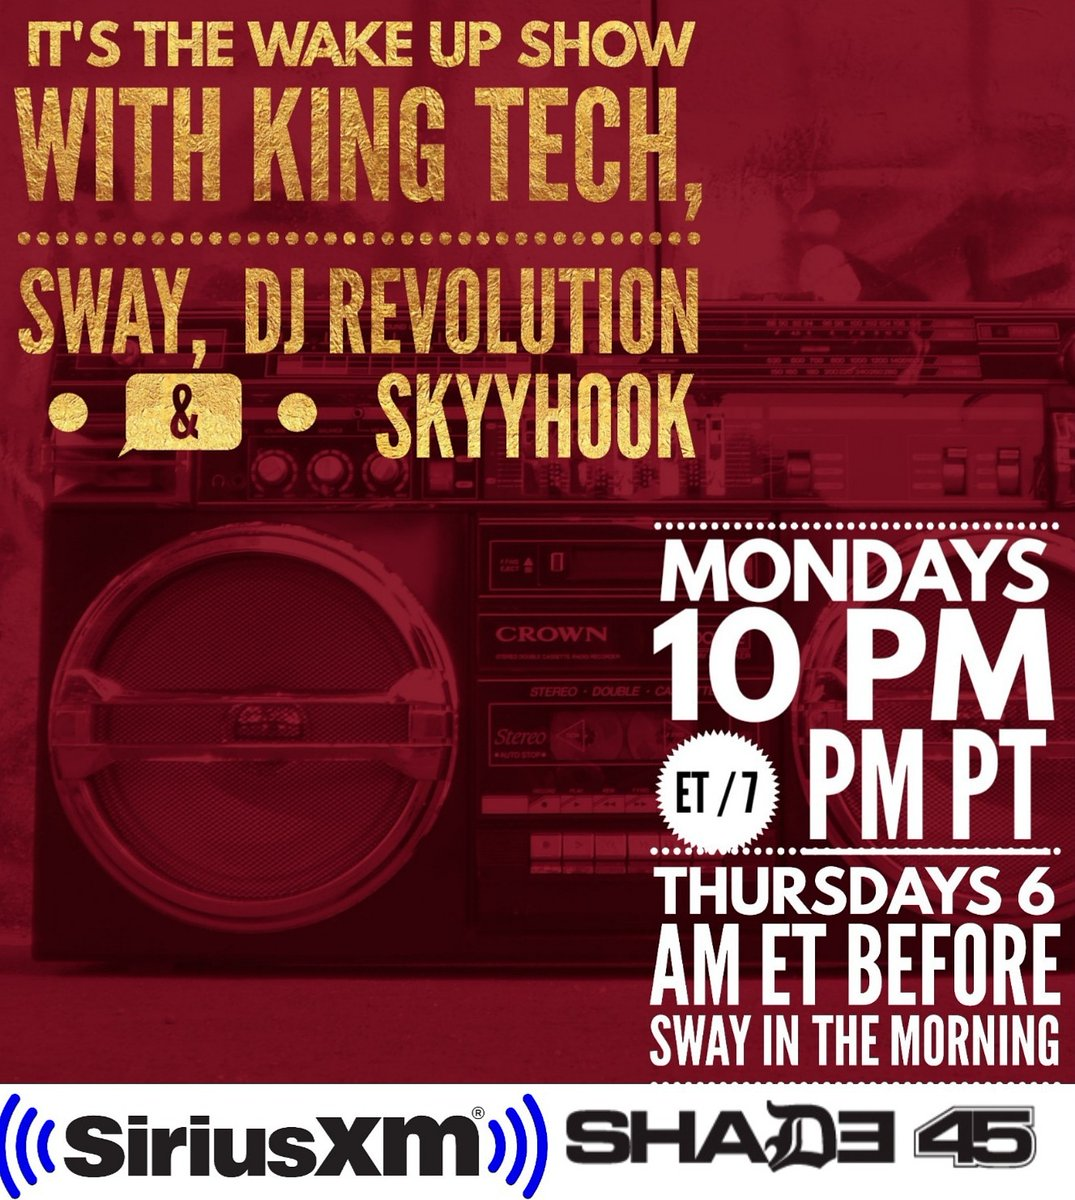 TONIGHT IT'S THE Skyyhook DIAMONDS IN THE ROUGH YEAR IN REVIEW FOR THE YEAR 20X2 ON THE @wakeupshow w/ King Tech @RealSway @DJRevolution & @SkyyhookRadio & it's on NOW! GET HERE!! Only on @SIRIUSXM @Shade45 #MumbleFreeRapRadio #HipHopLife #HIPHOPCULTURE #DJLife #Shade45